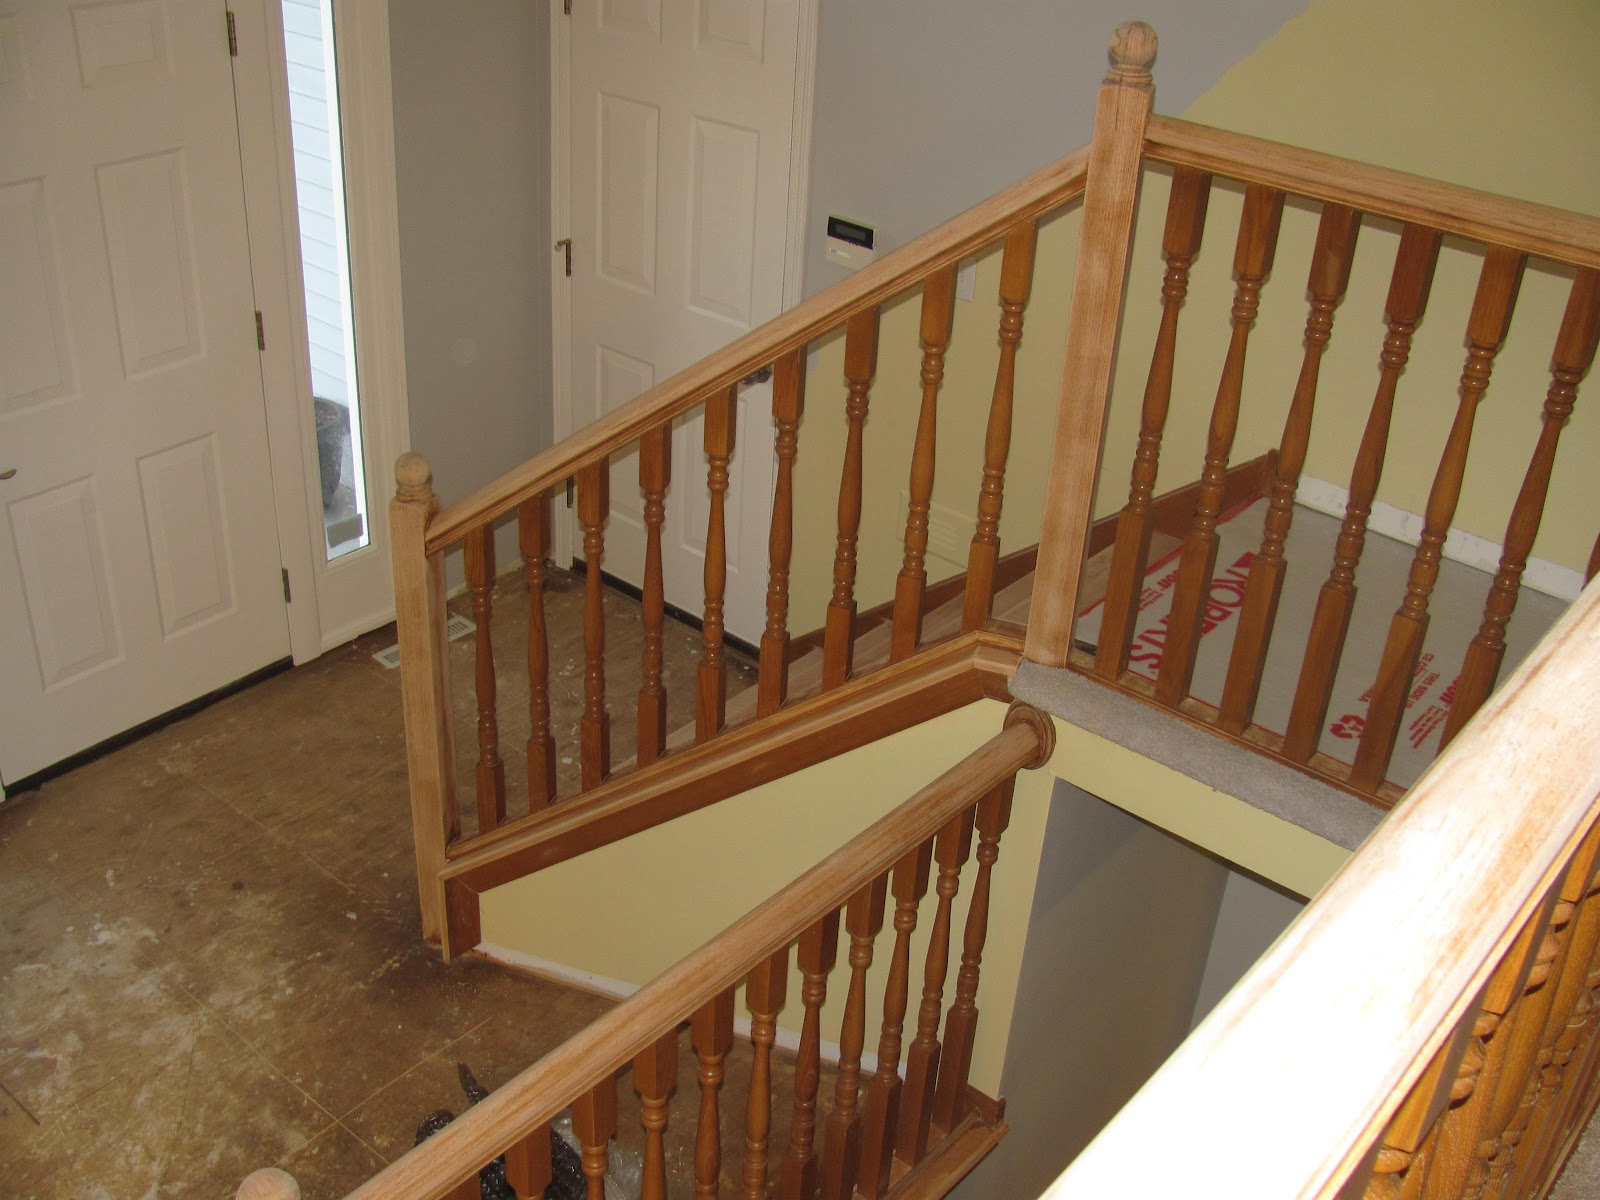 I Wanted To Match The Railing And Stair Stain To The Color Of The Laminate  As Closely As Possible. For The Railing, I Decided To Use Minwax Polyshades  In ...